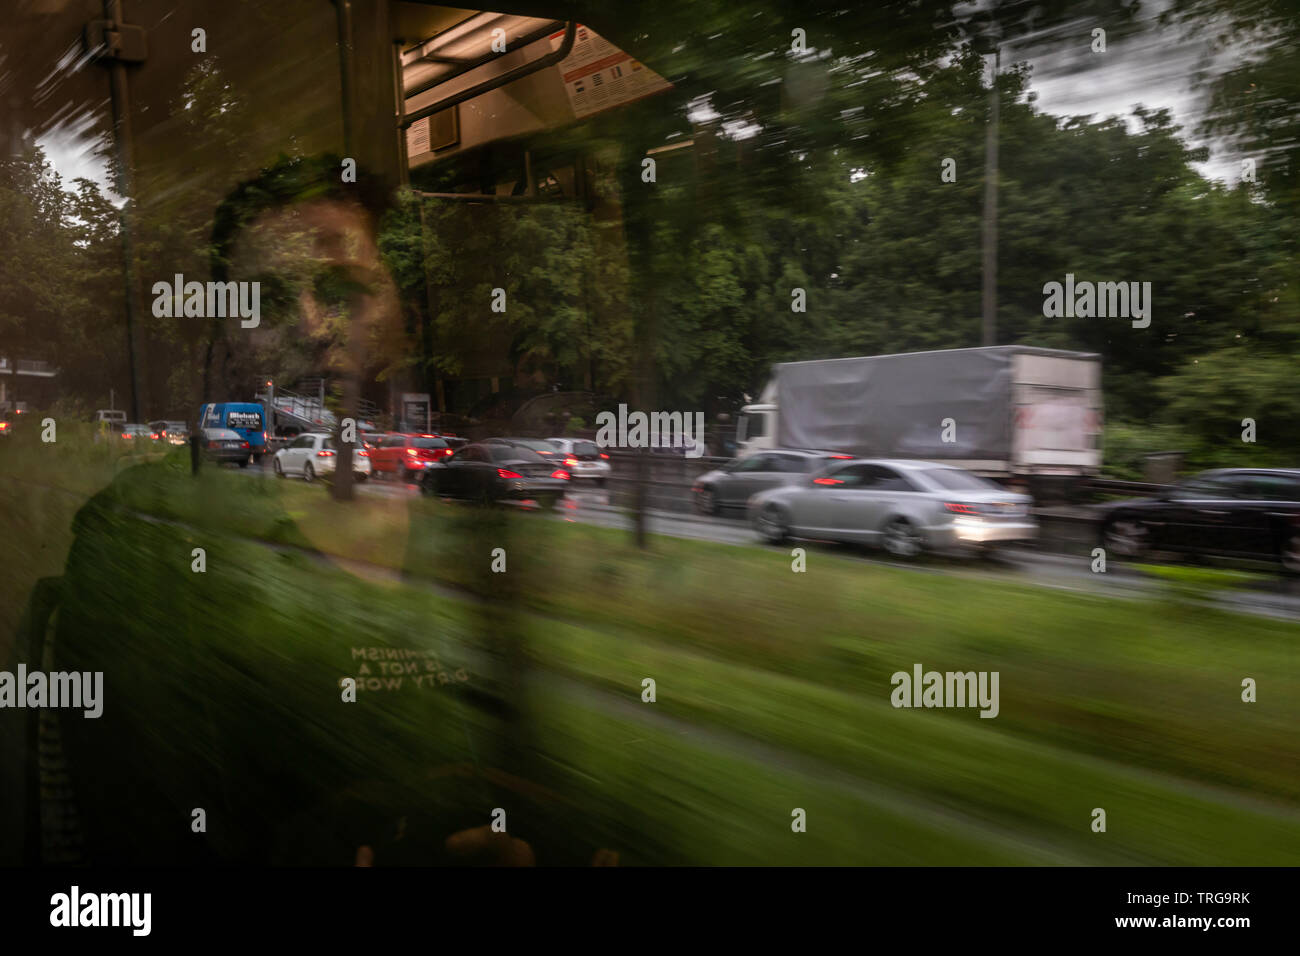 Prospects from the subway for flowing traffic on the Bundesstrasse 1 in Dortmund - Stock Image